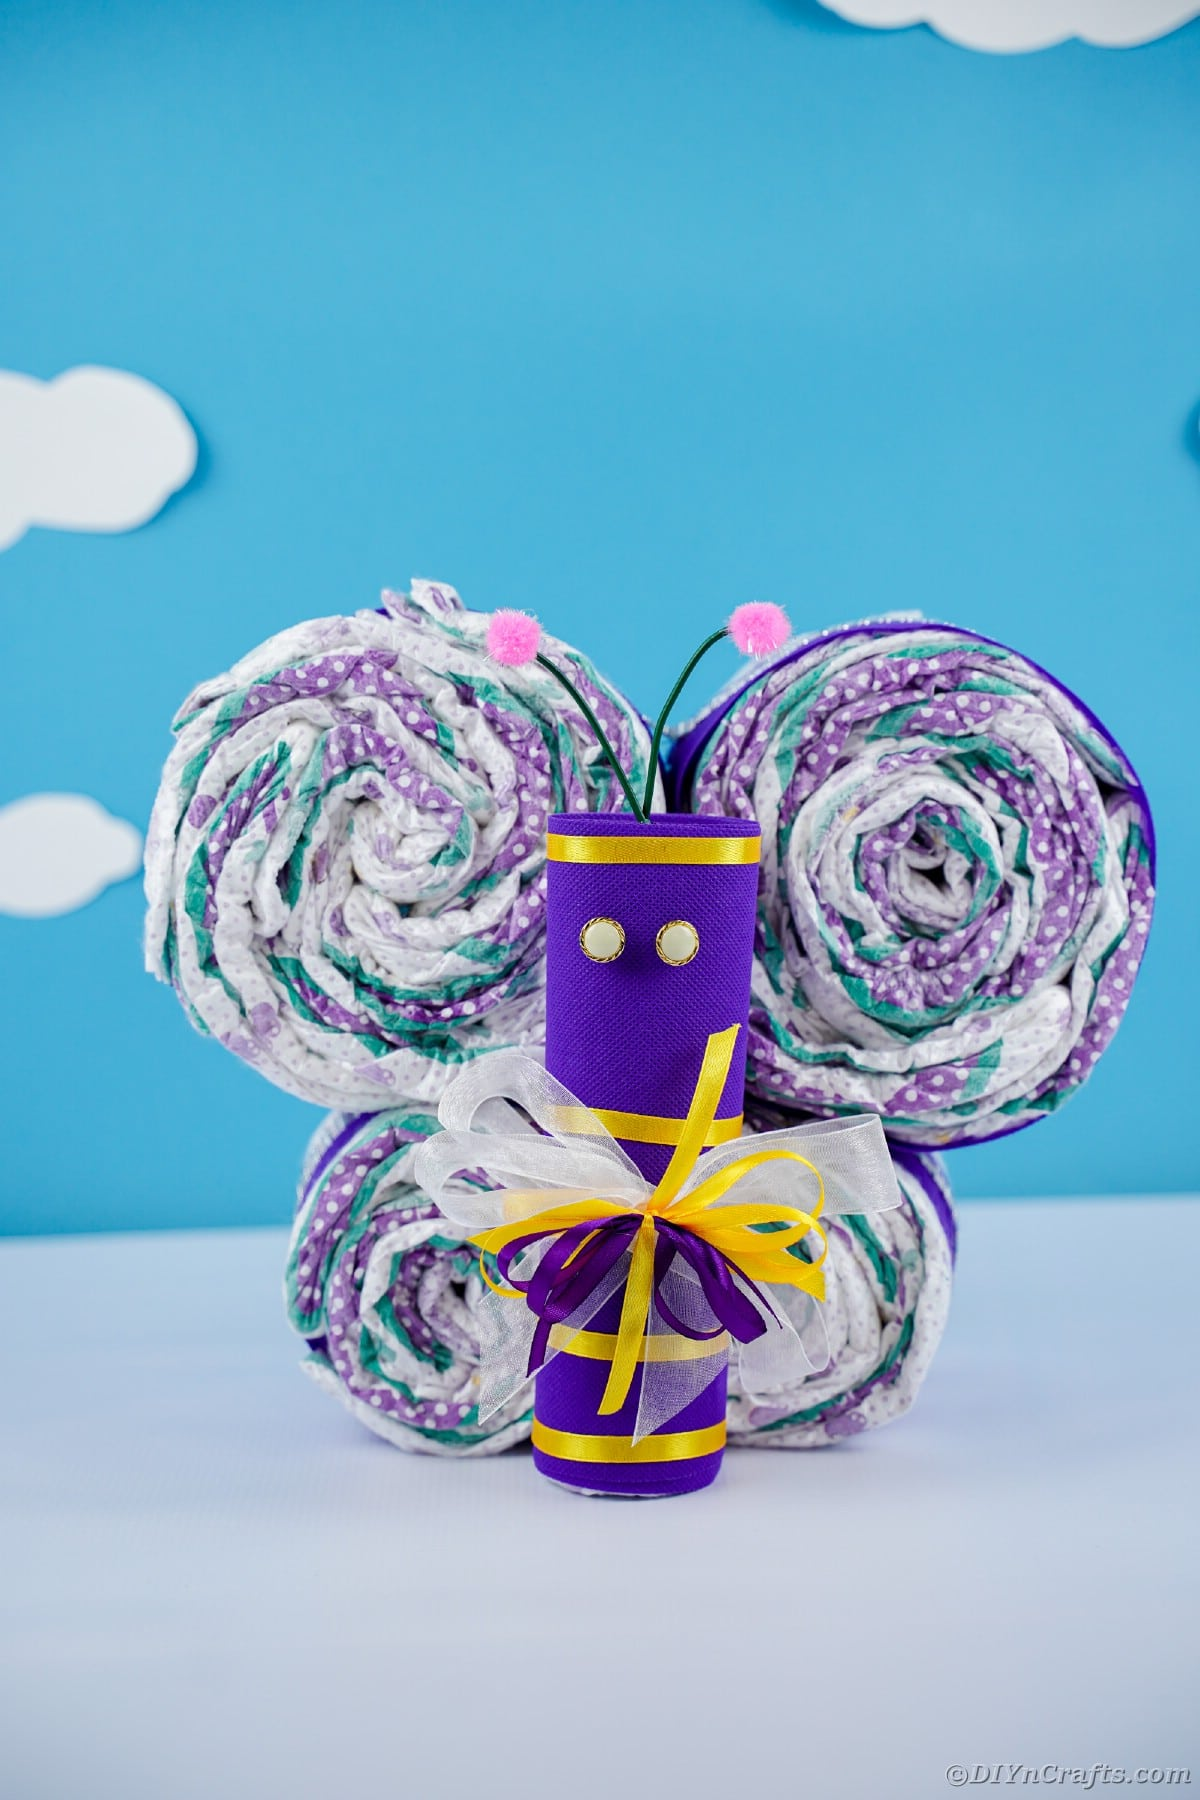 Diaper butterfly in purple and yellow in front of blue wall with clouds